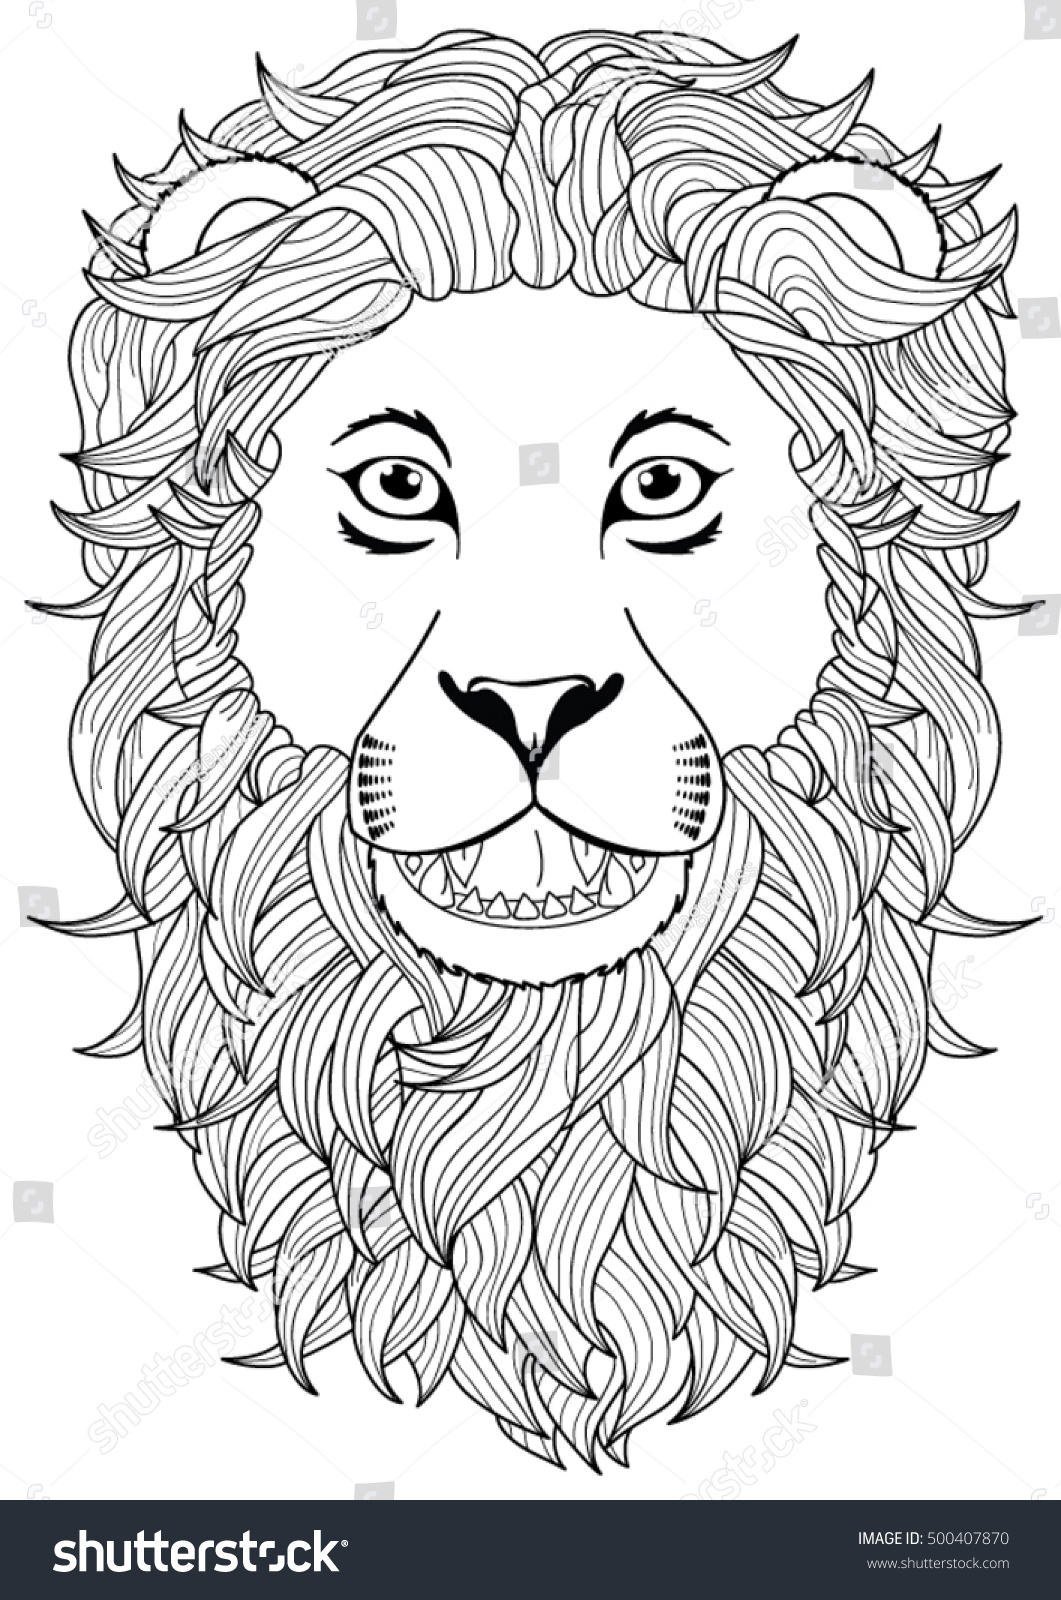 Lion Head Coloring Page Stock Vector 500407870 Shutterstock